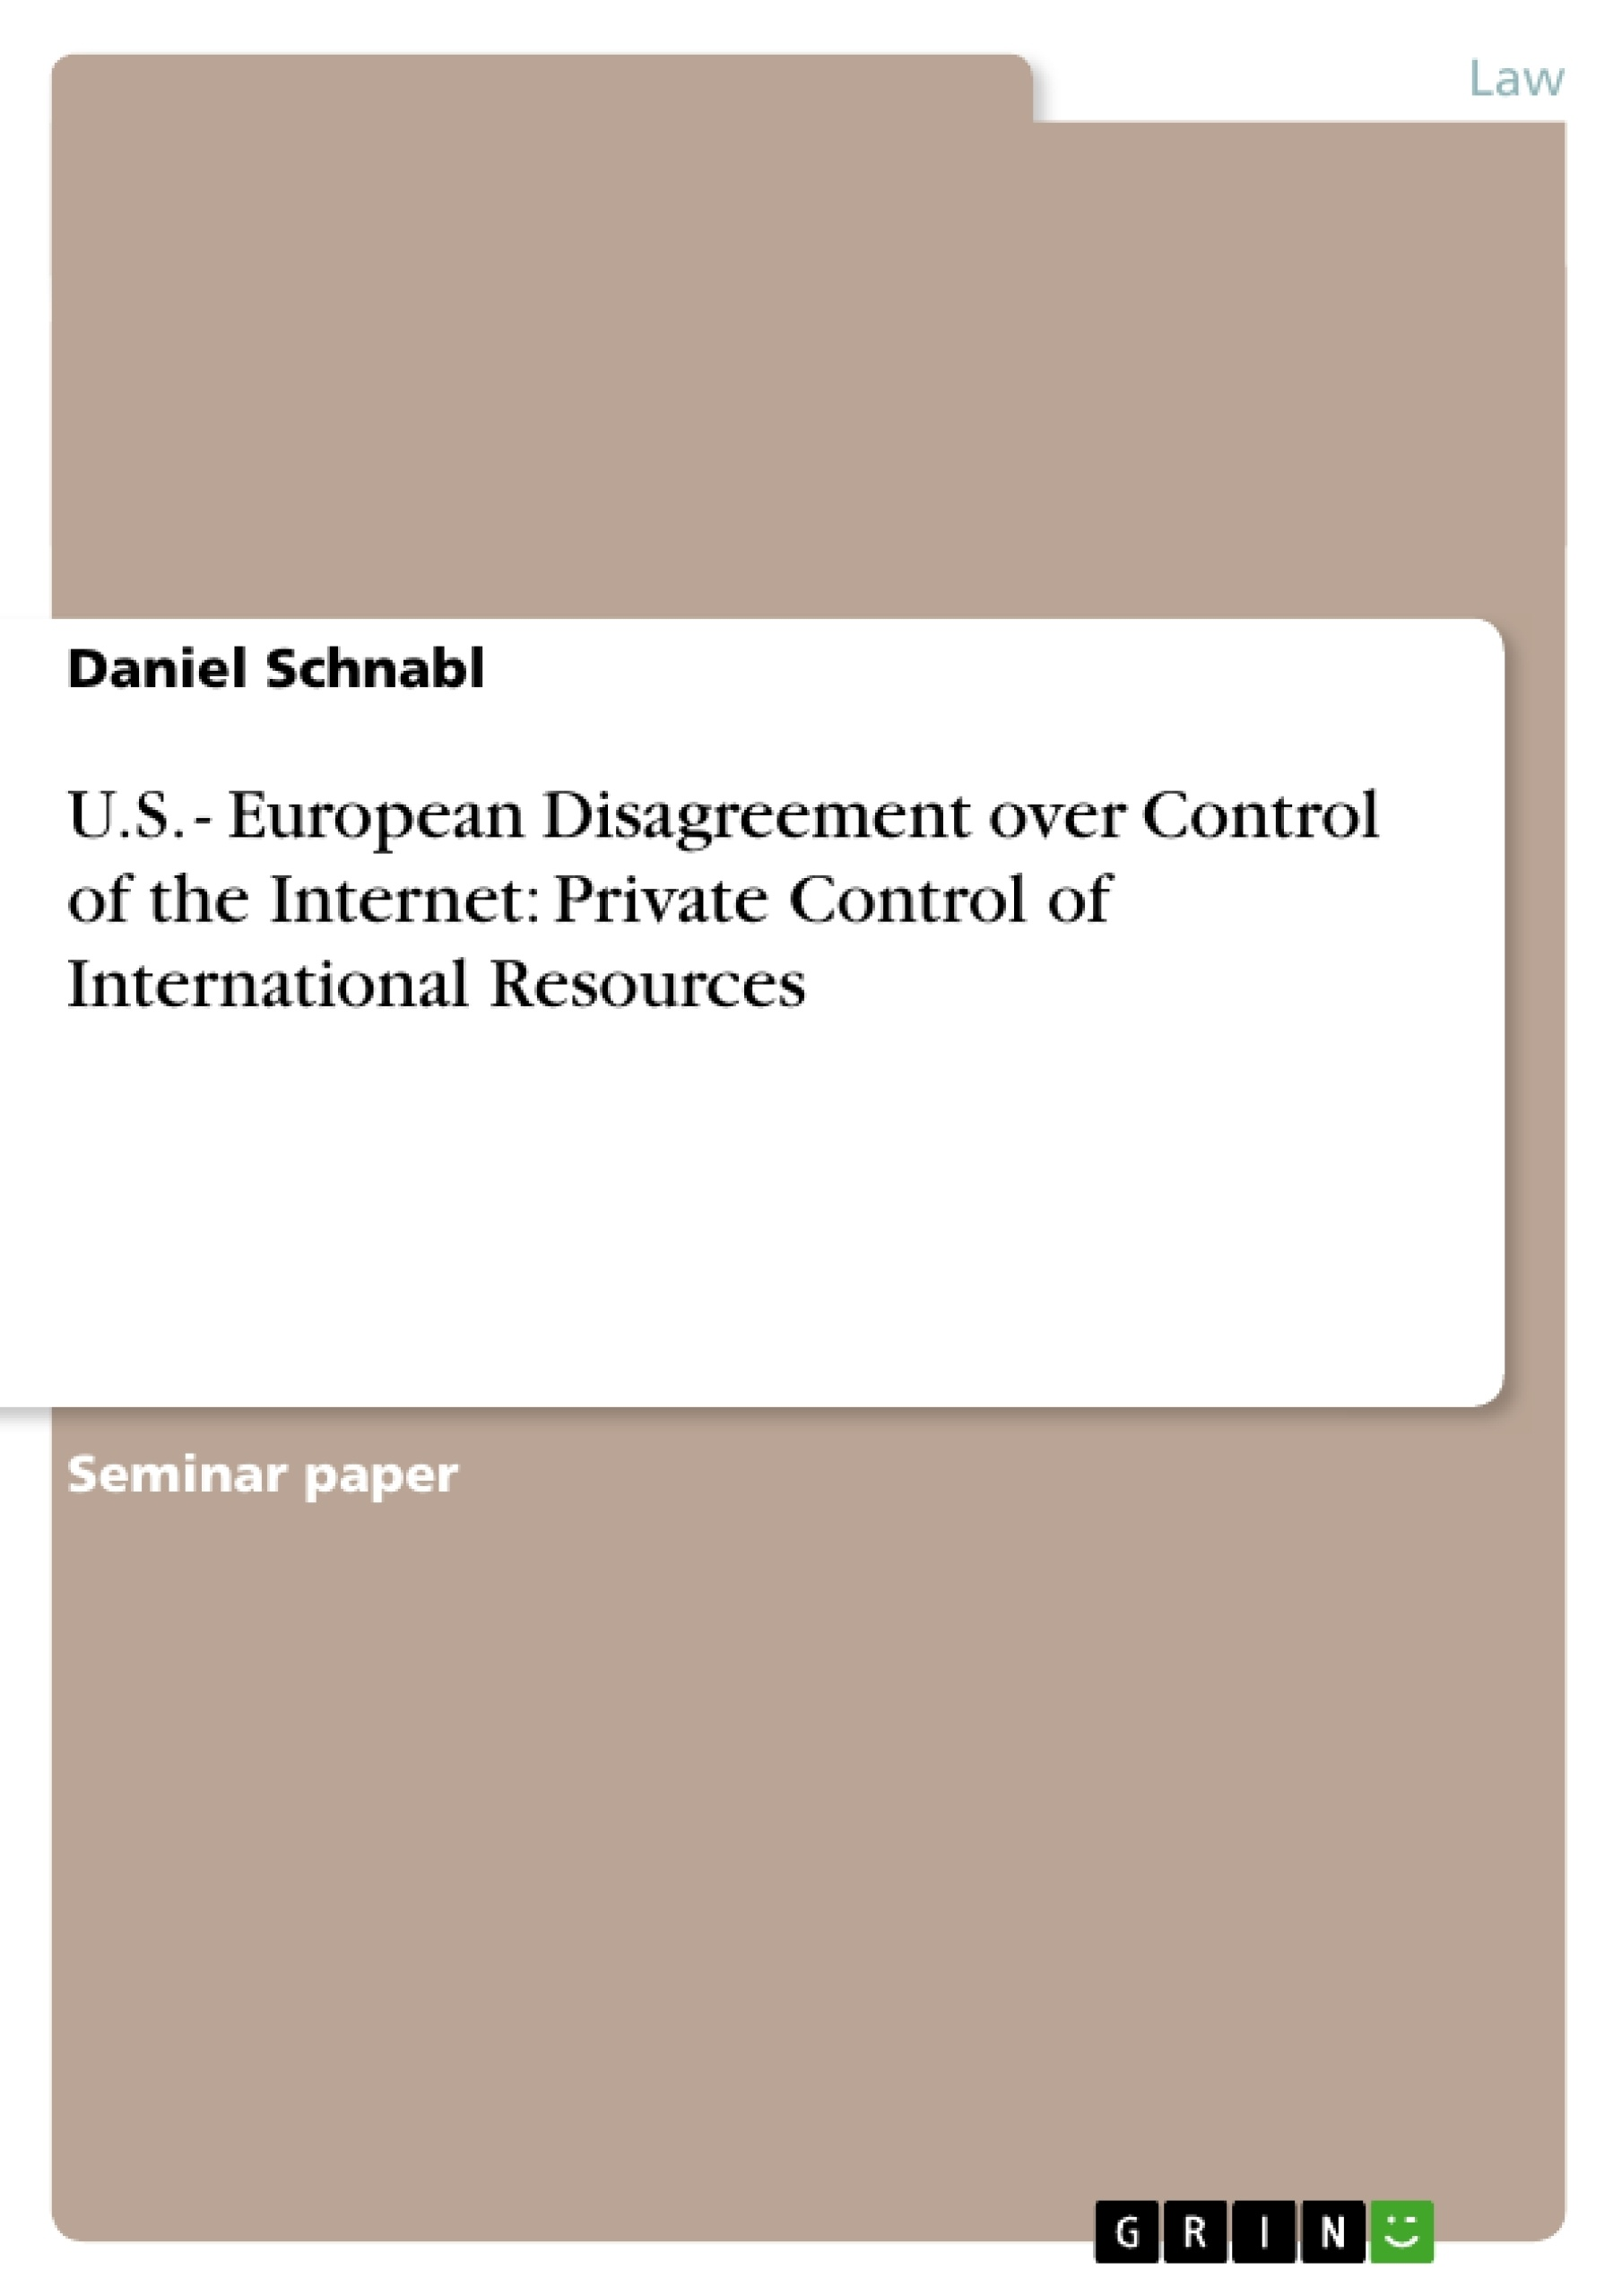 Title: U.S. - European Disagreement over Control of the Internet: Private Control of International Resources